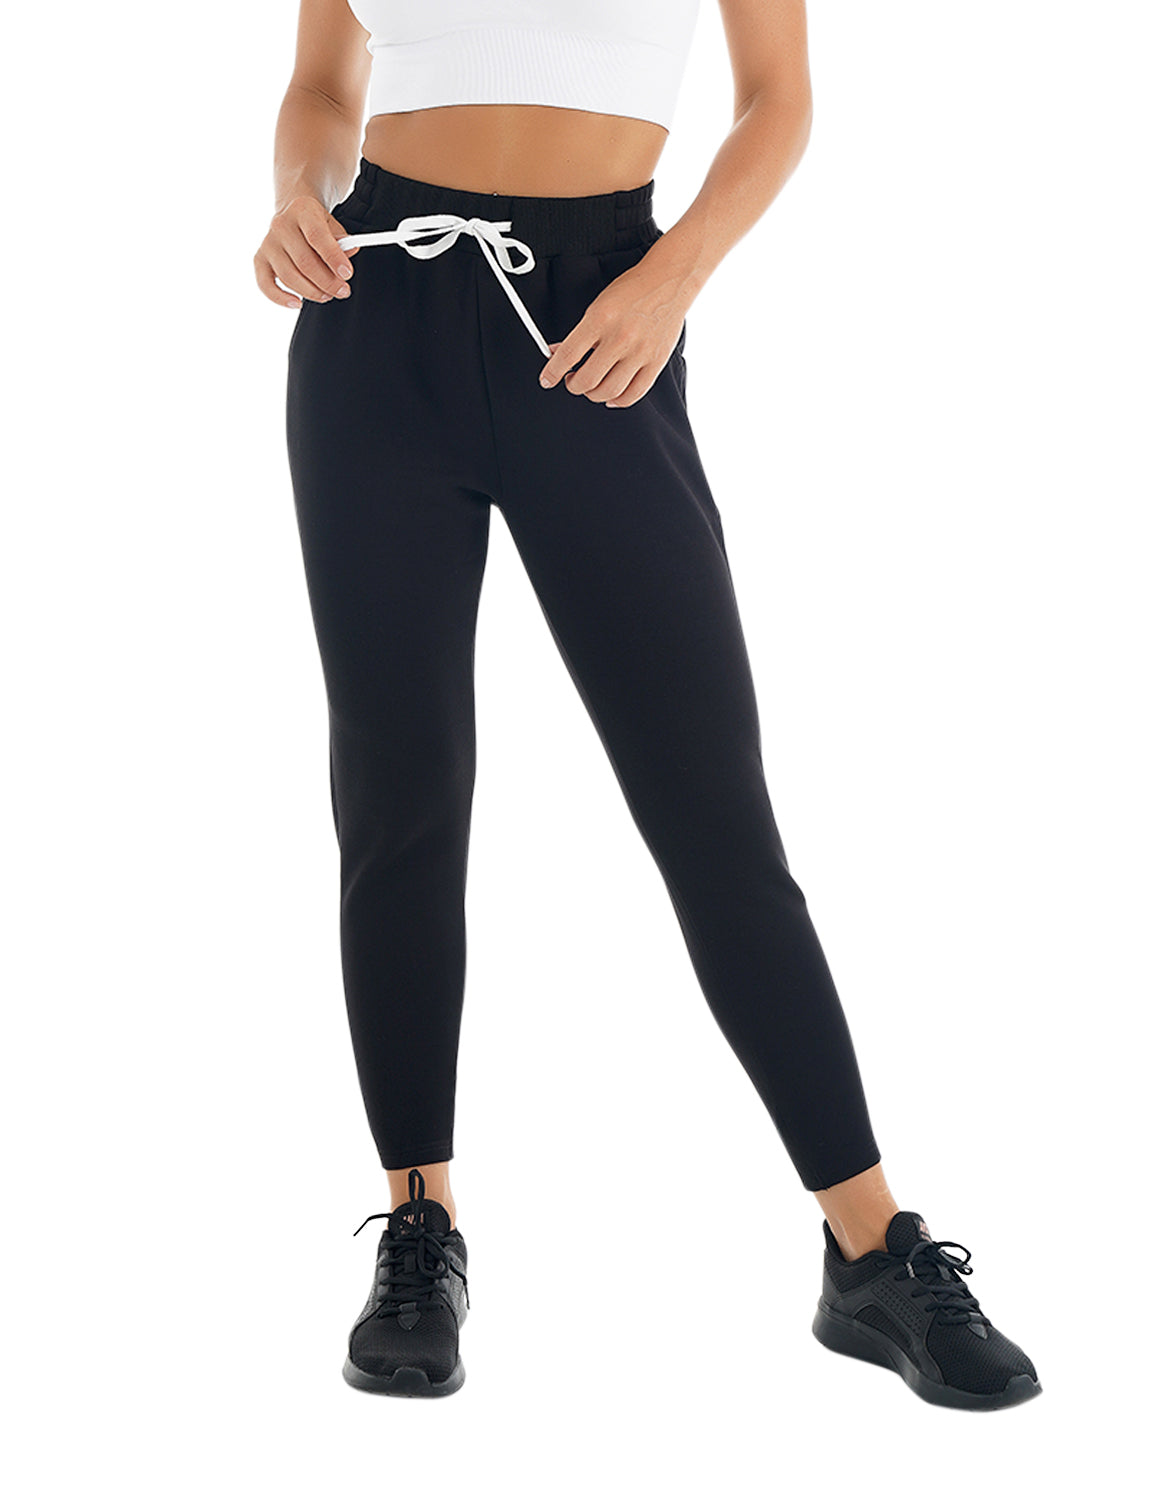 Blooming Jelly_Casual Sweatpants Tapered Joggers_Black_256117_02_Women Athletic Comfy Outfits_Bottoms_Joggers